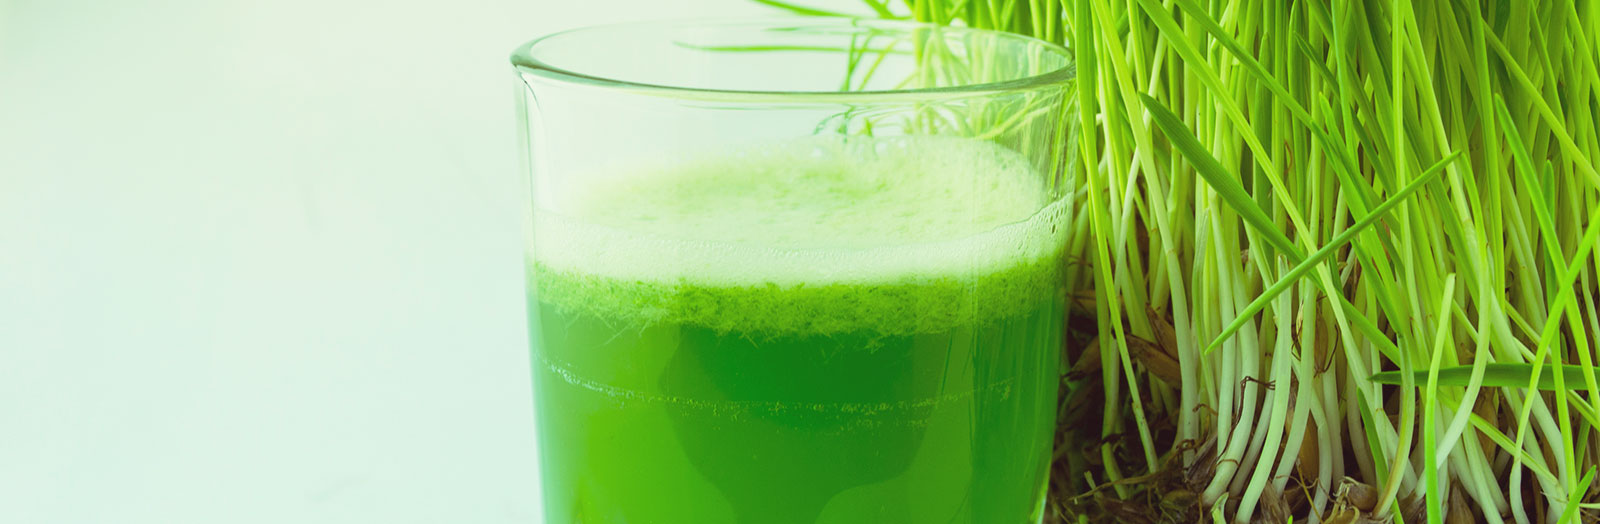 Wacky Trend Wednesday: Chlorophyll Water